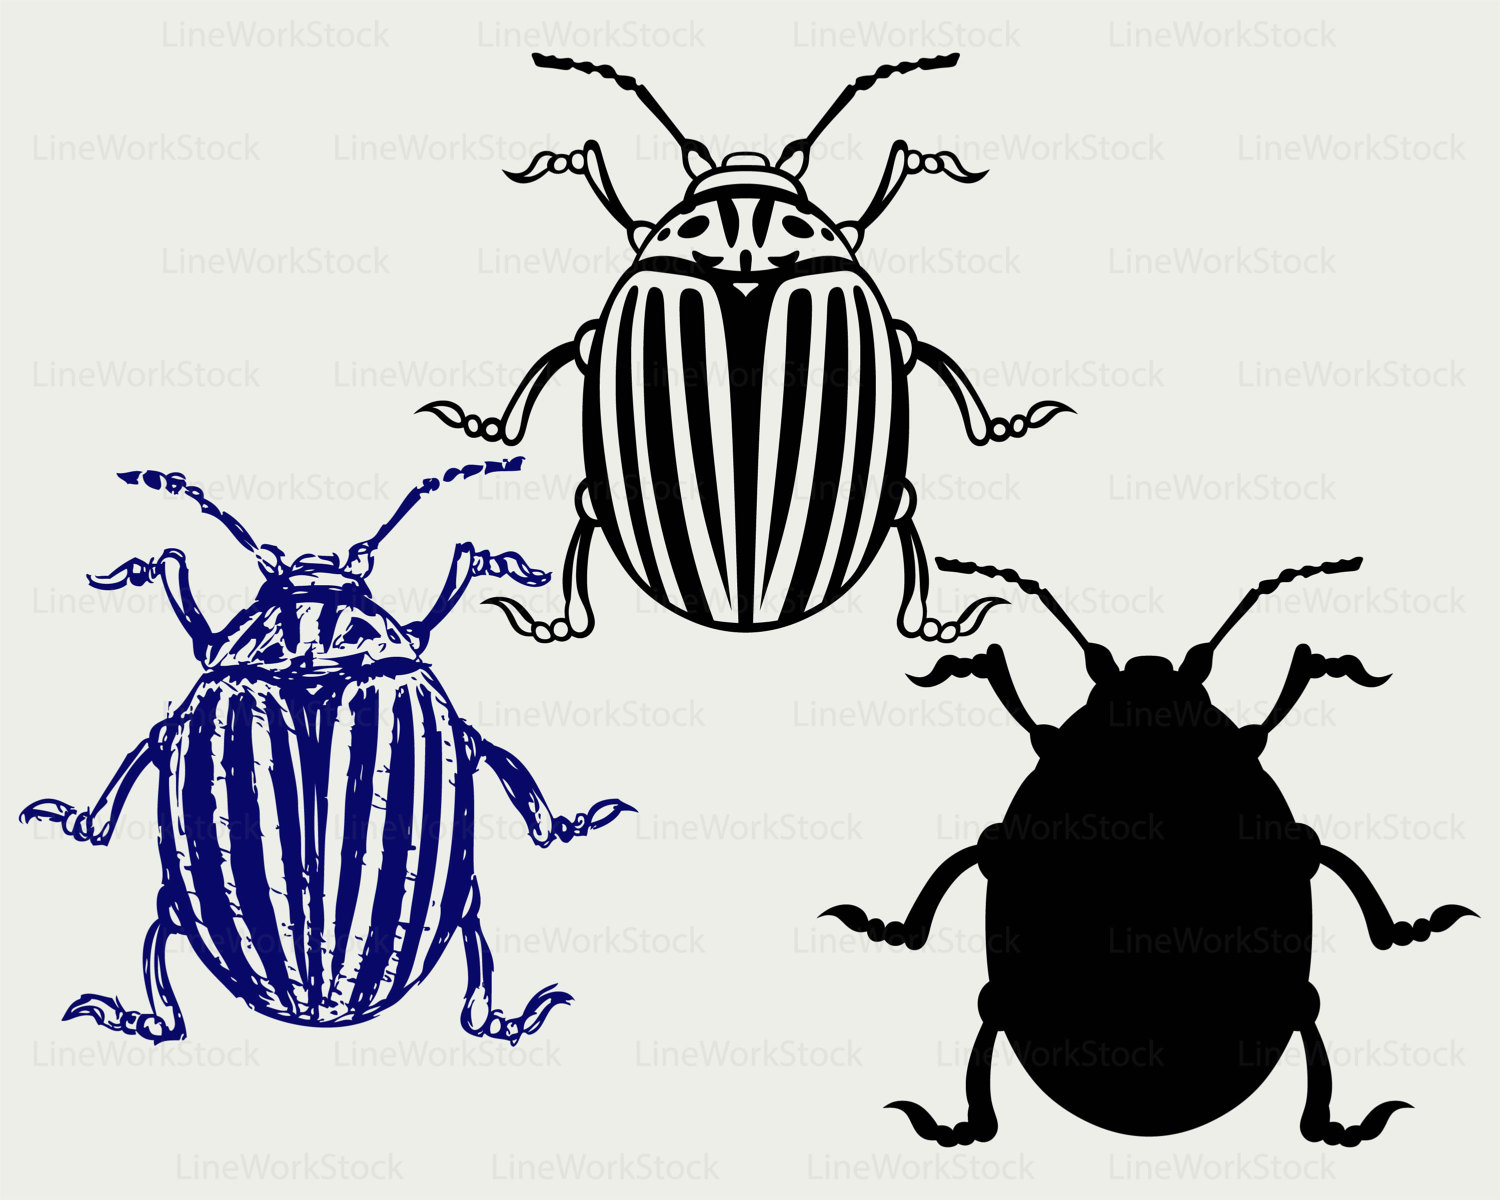 1500x1200 Colorado Beetle Svgeetle Clipartug Svginsects Silhouette